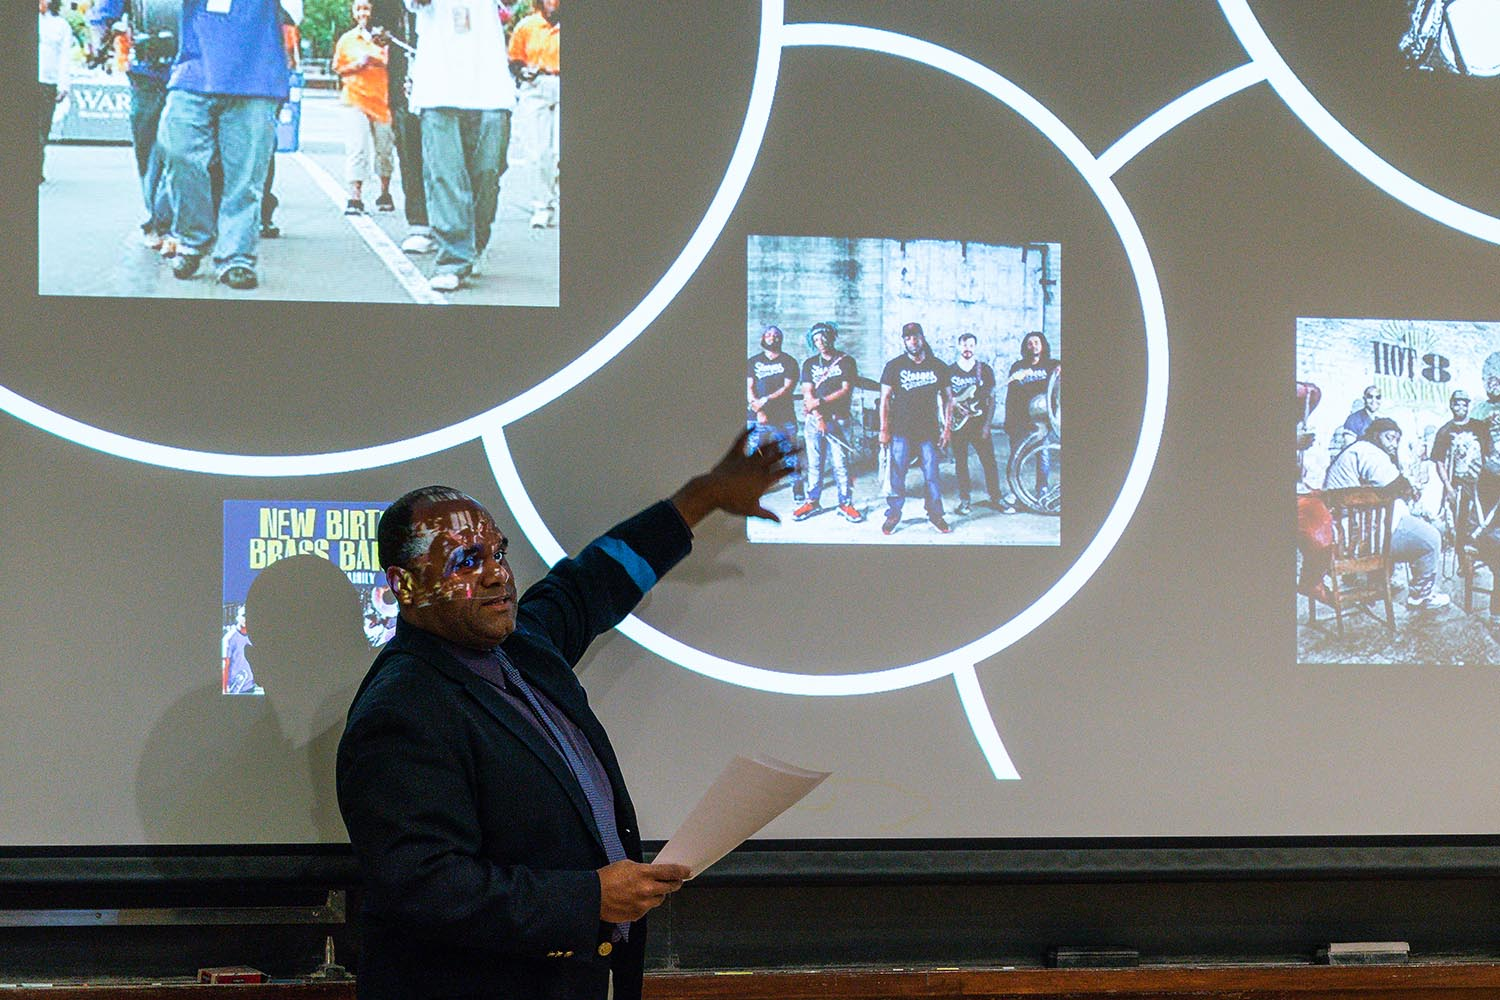 "McNeil explained how the institution of the Black New Orleans brass band represents a genealogic continuum that extends back to the arrival of the first enslaved Africans to the Louisiana Territory. ""This continuum connects a violent past, marked by physical abuse of black bodies in the form of institutionalized slavery, to a violent present confounded by systemic poverty, social injustice, and police brutality,"" he said. In spite of extreme oppression, the brass band community continues to enrich and enliven both local communities through their iconic musical offerings."